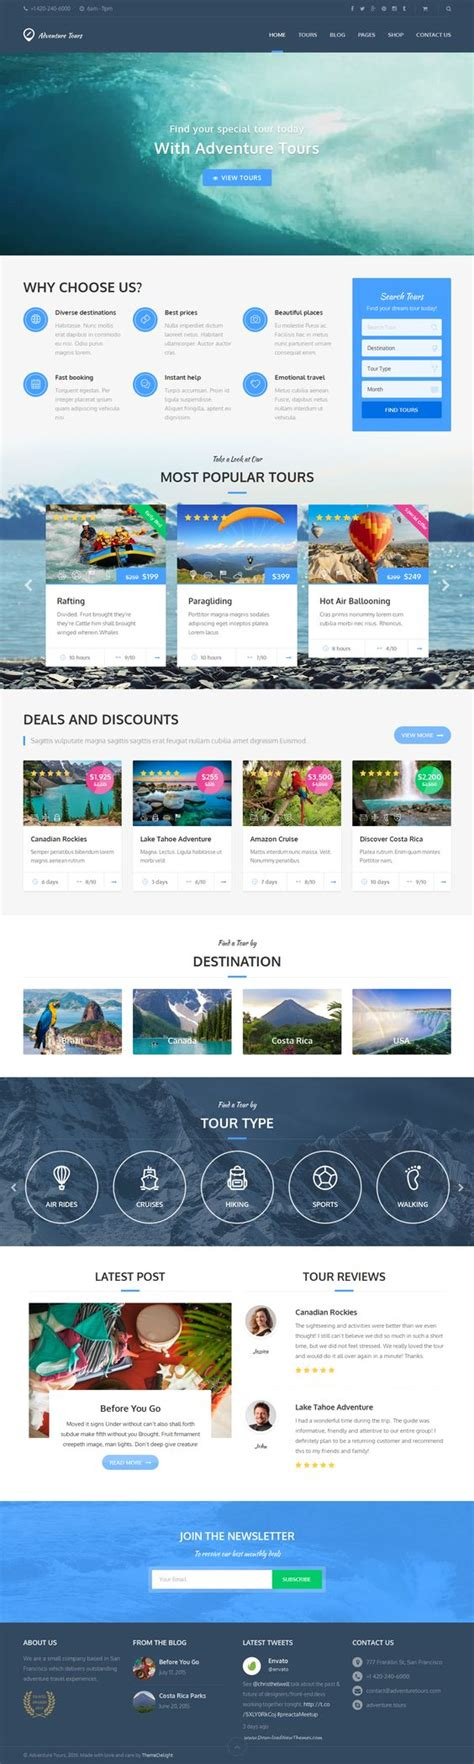 themeforest travel agency adventure tours travel agency and tour operator on pinterest